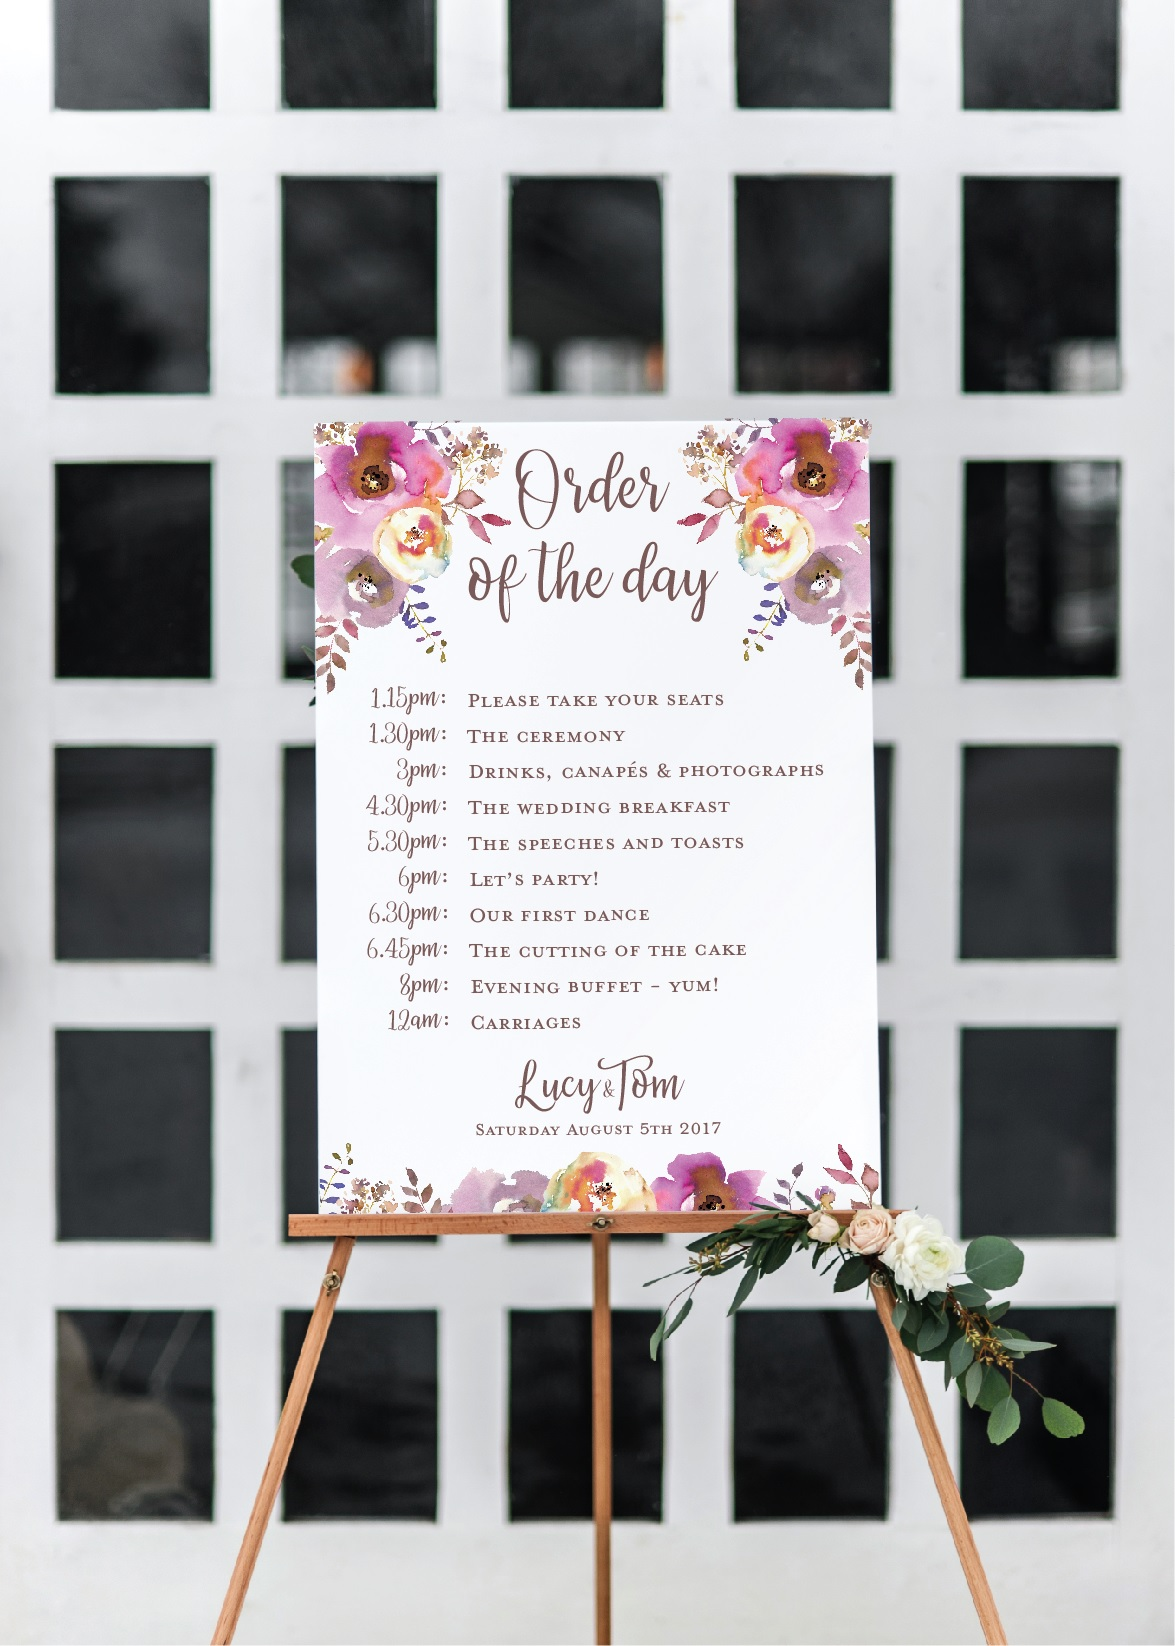 Rustic floral wedding timeline sign